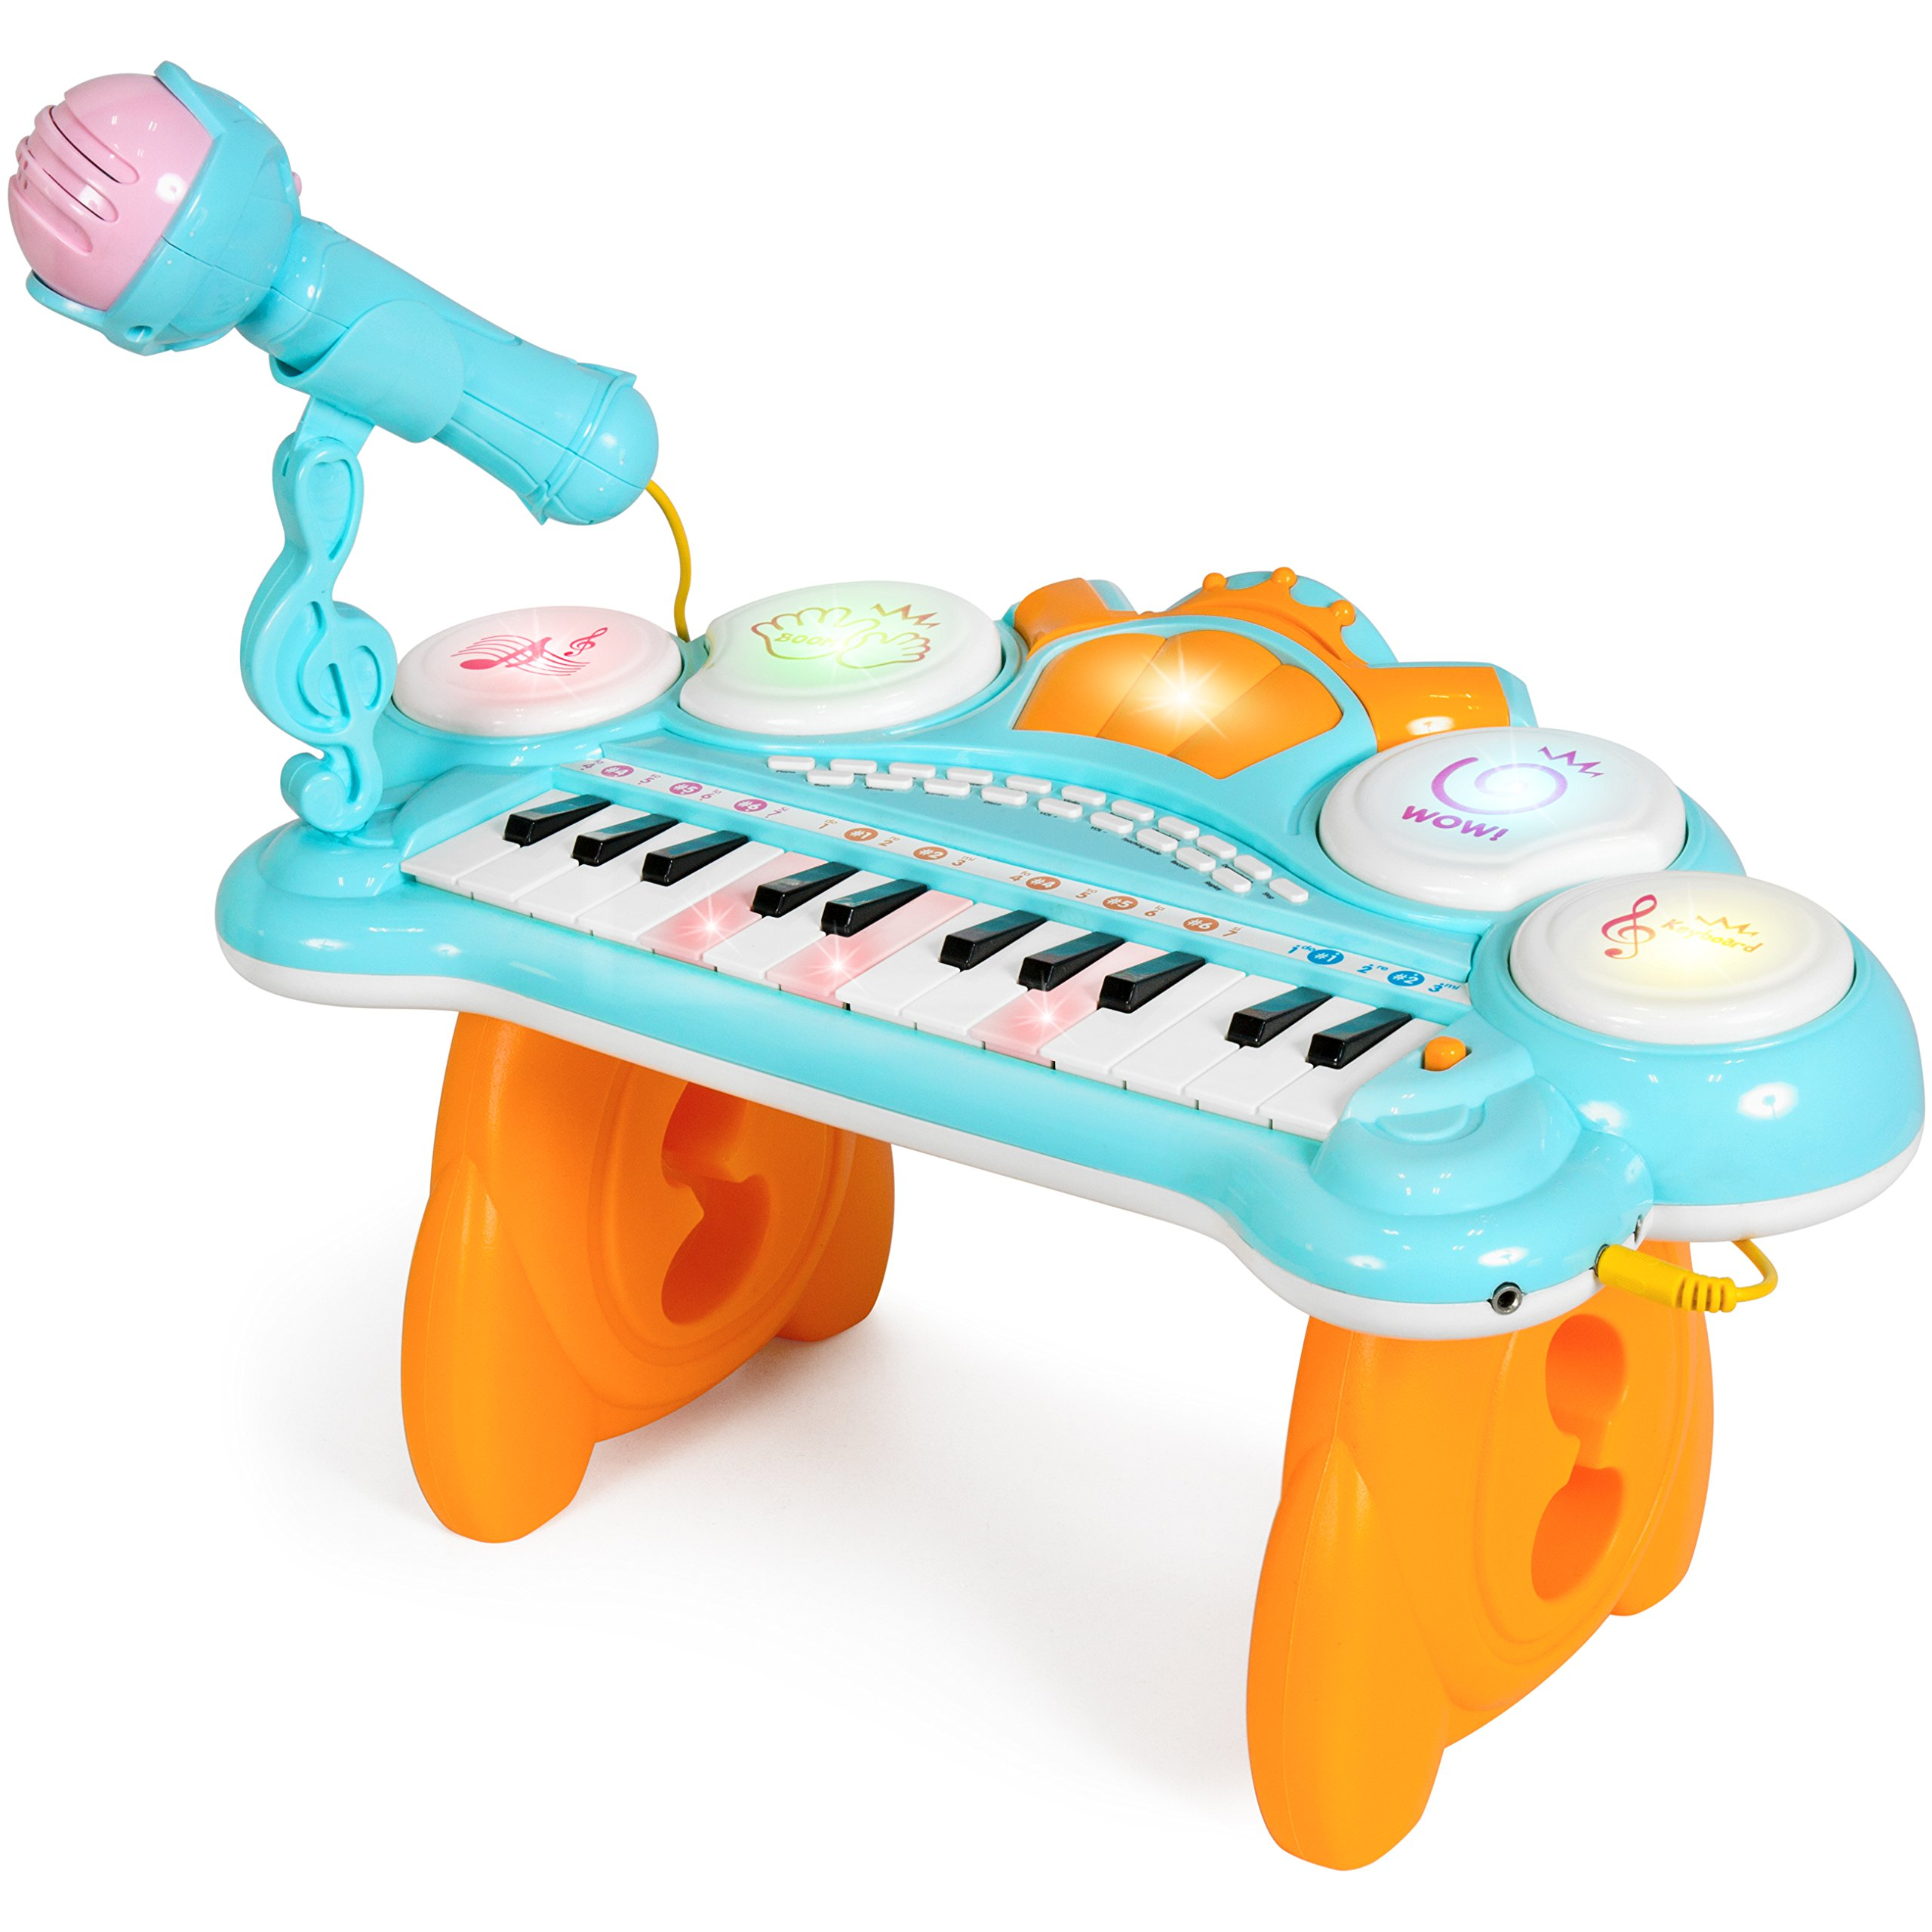 Best Choice Products 24-Key Kids Toddler Educational Learning Musical Electronic Keyboard w/ Lights, Drums, Microphone, MP3, Demo Songs, Teaching Mode - Blue